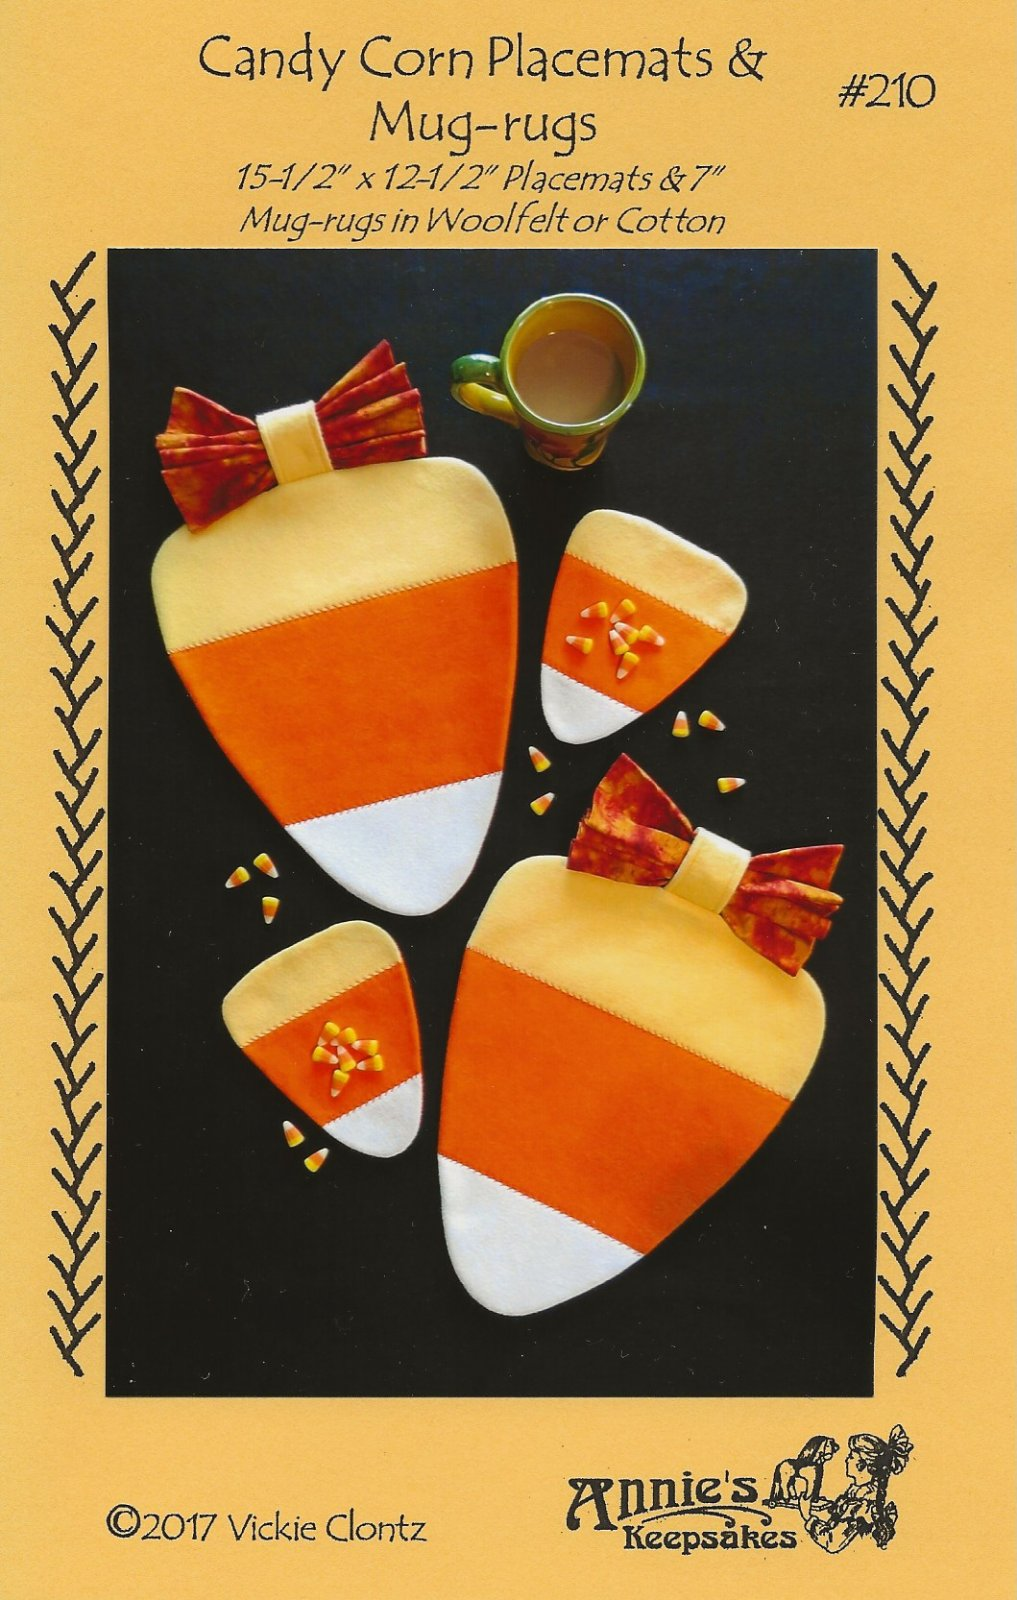 Candy Corn Placemats & Mug-rugs